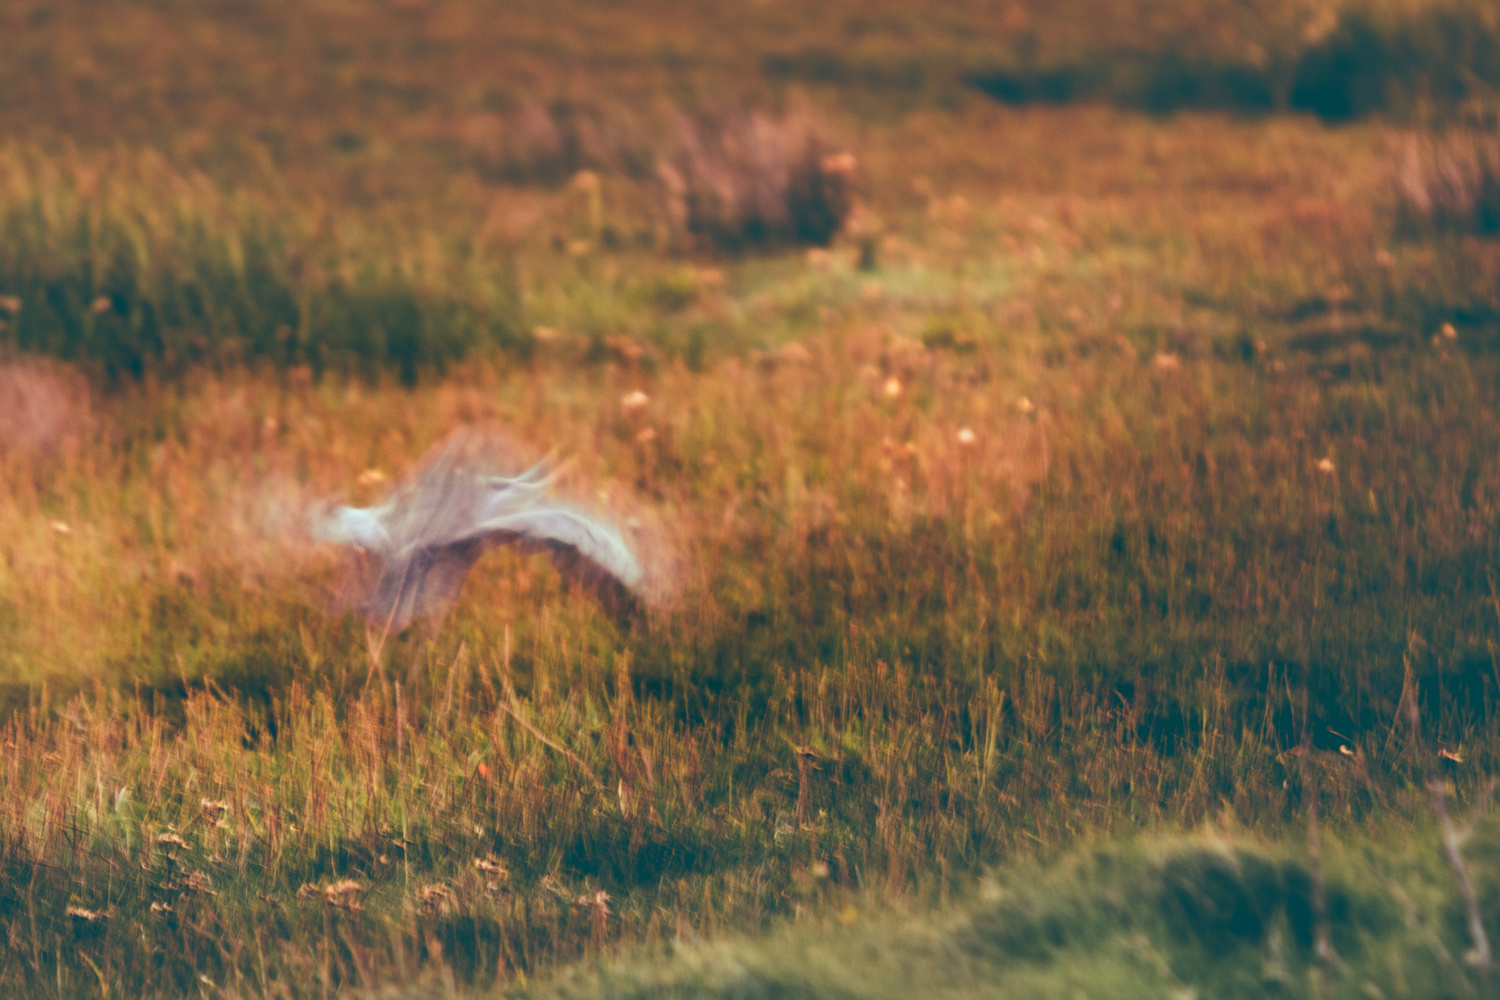 Abstract photograph of a heron taking flight.